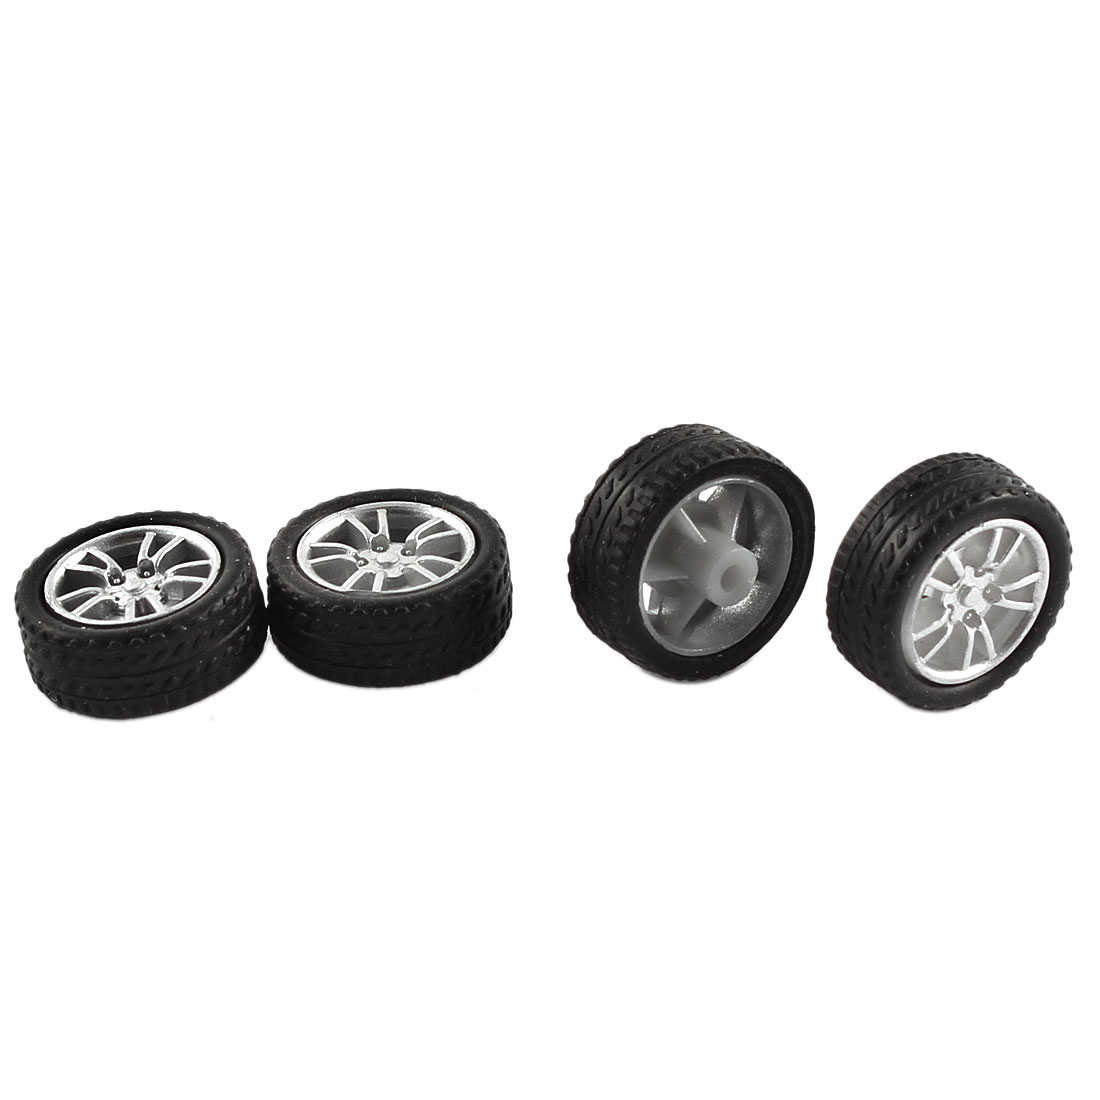 Rubber Roll 2mm Dia Shaft Car Truck Model Toys Wheel 16mmx5mm 4Pcs